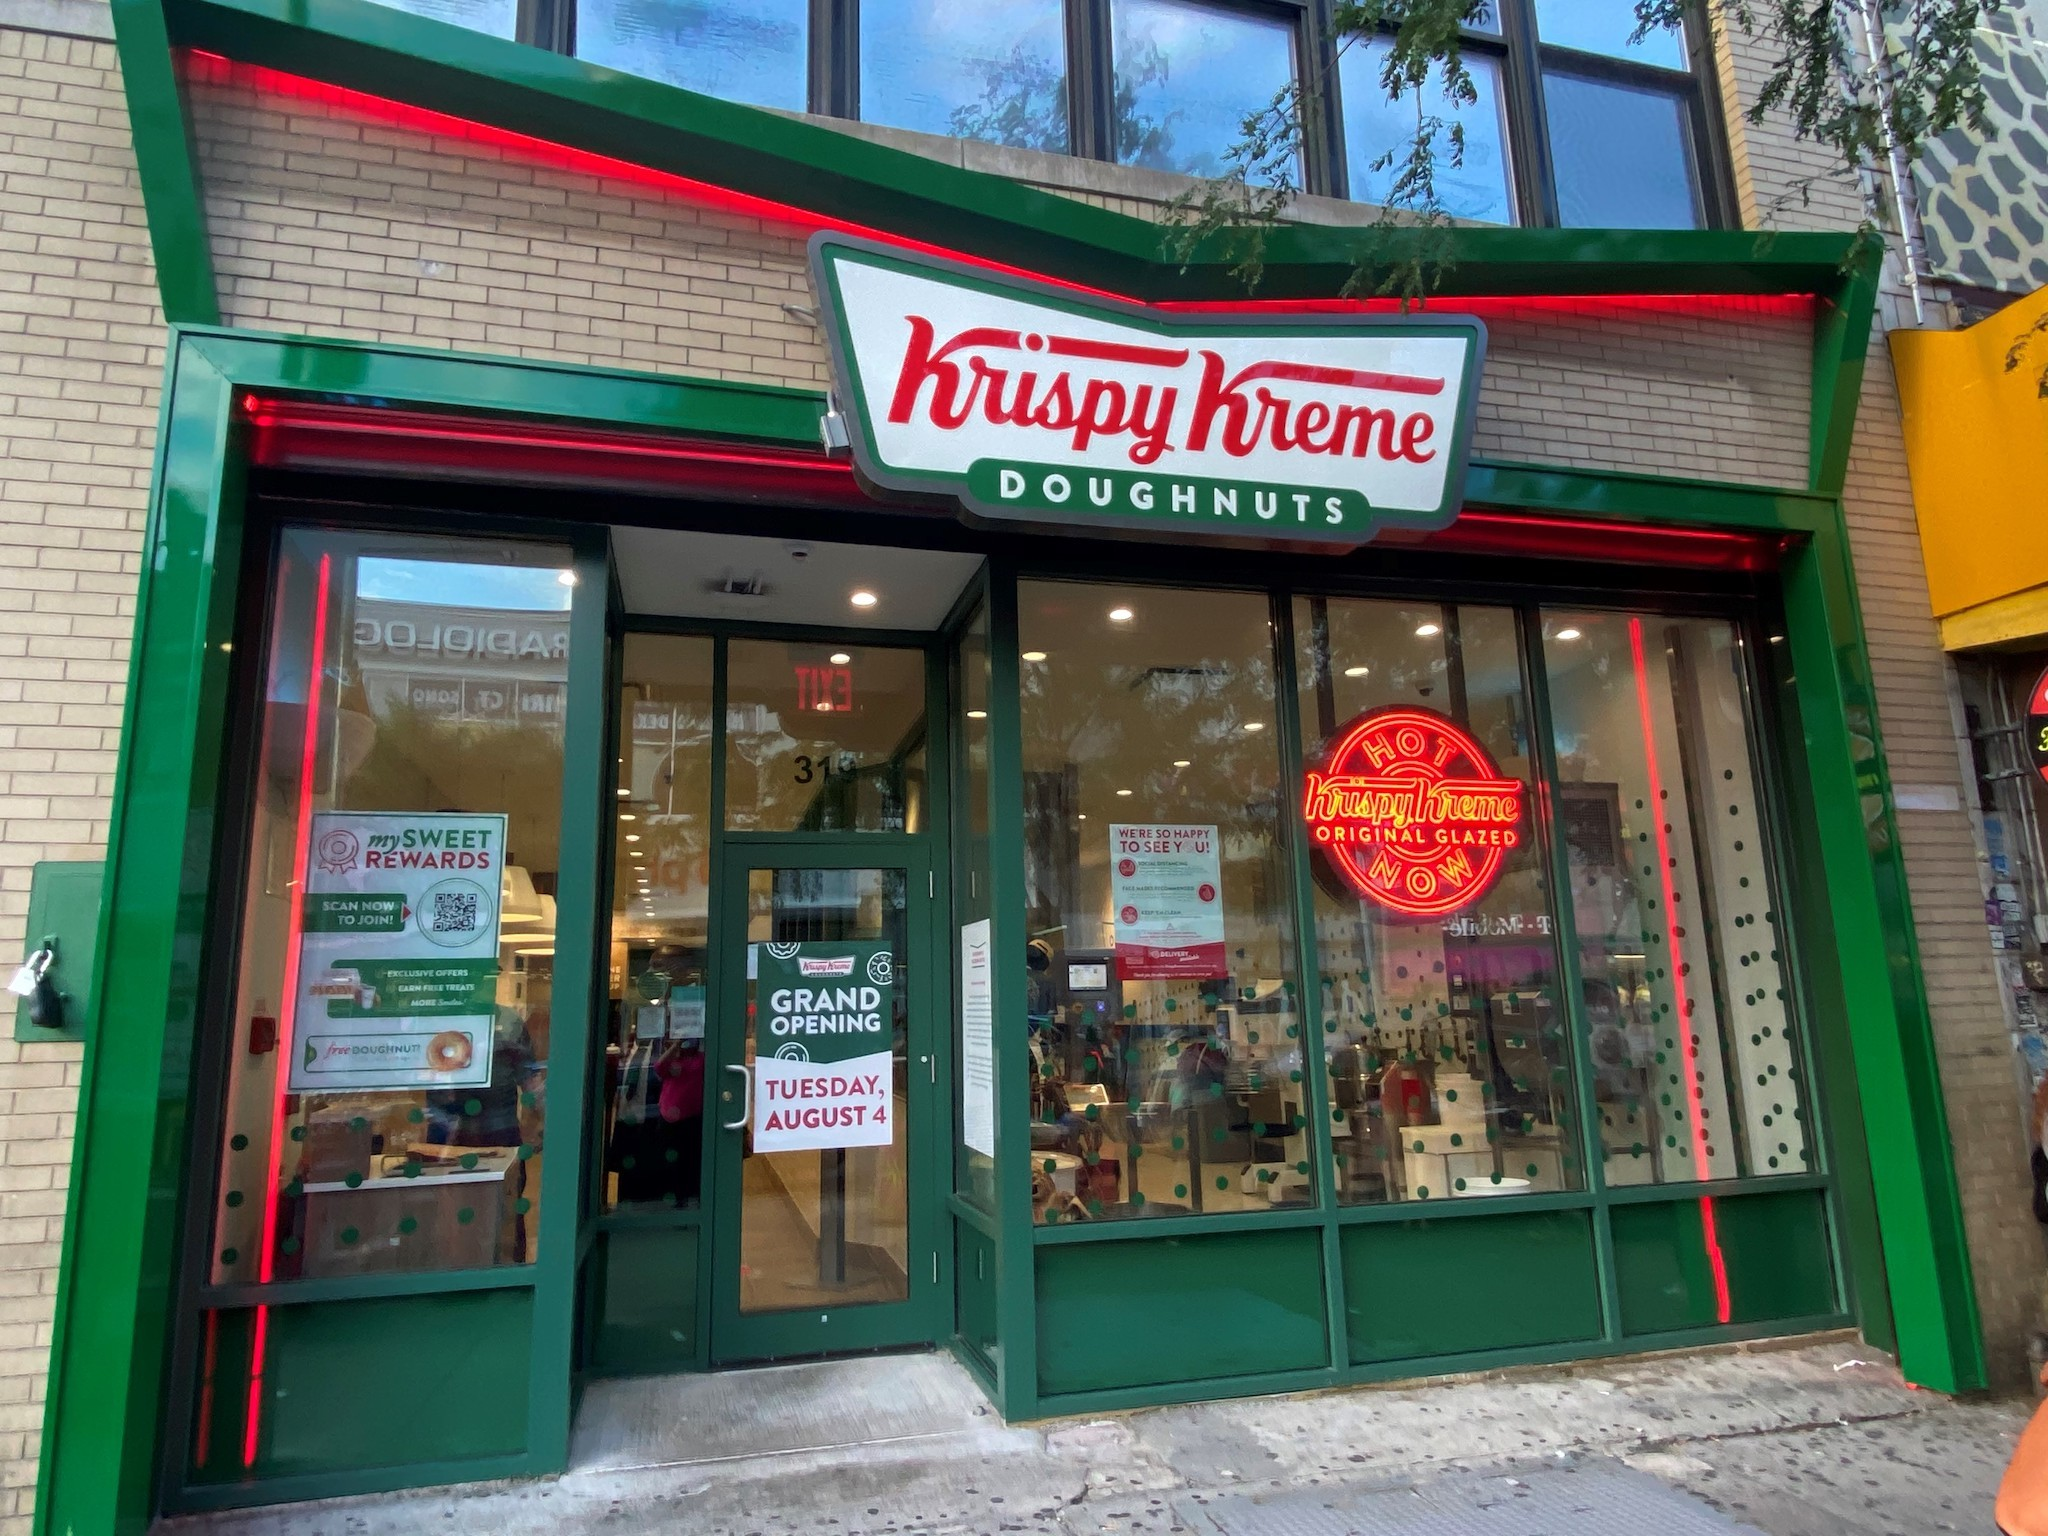 Krispy Kreme opens its first NYC shop with a Hot Light in Harlem today